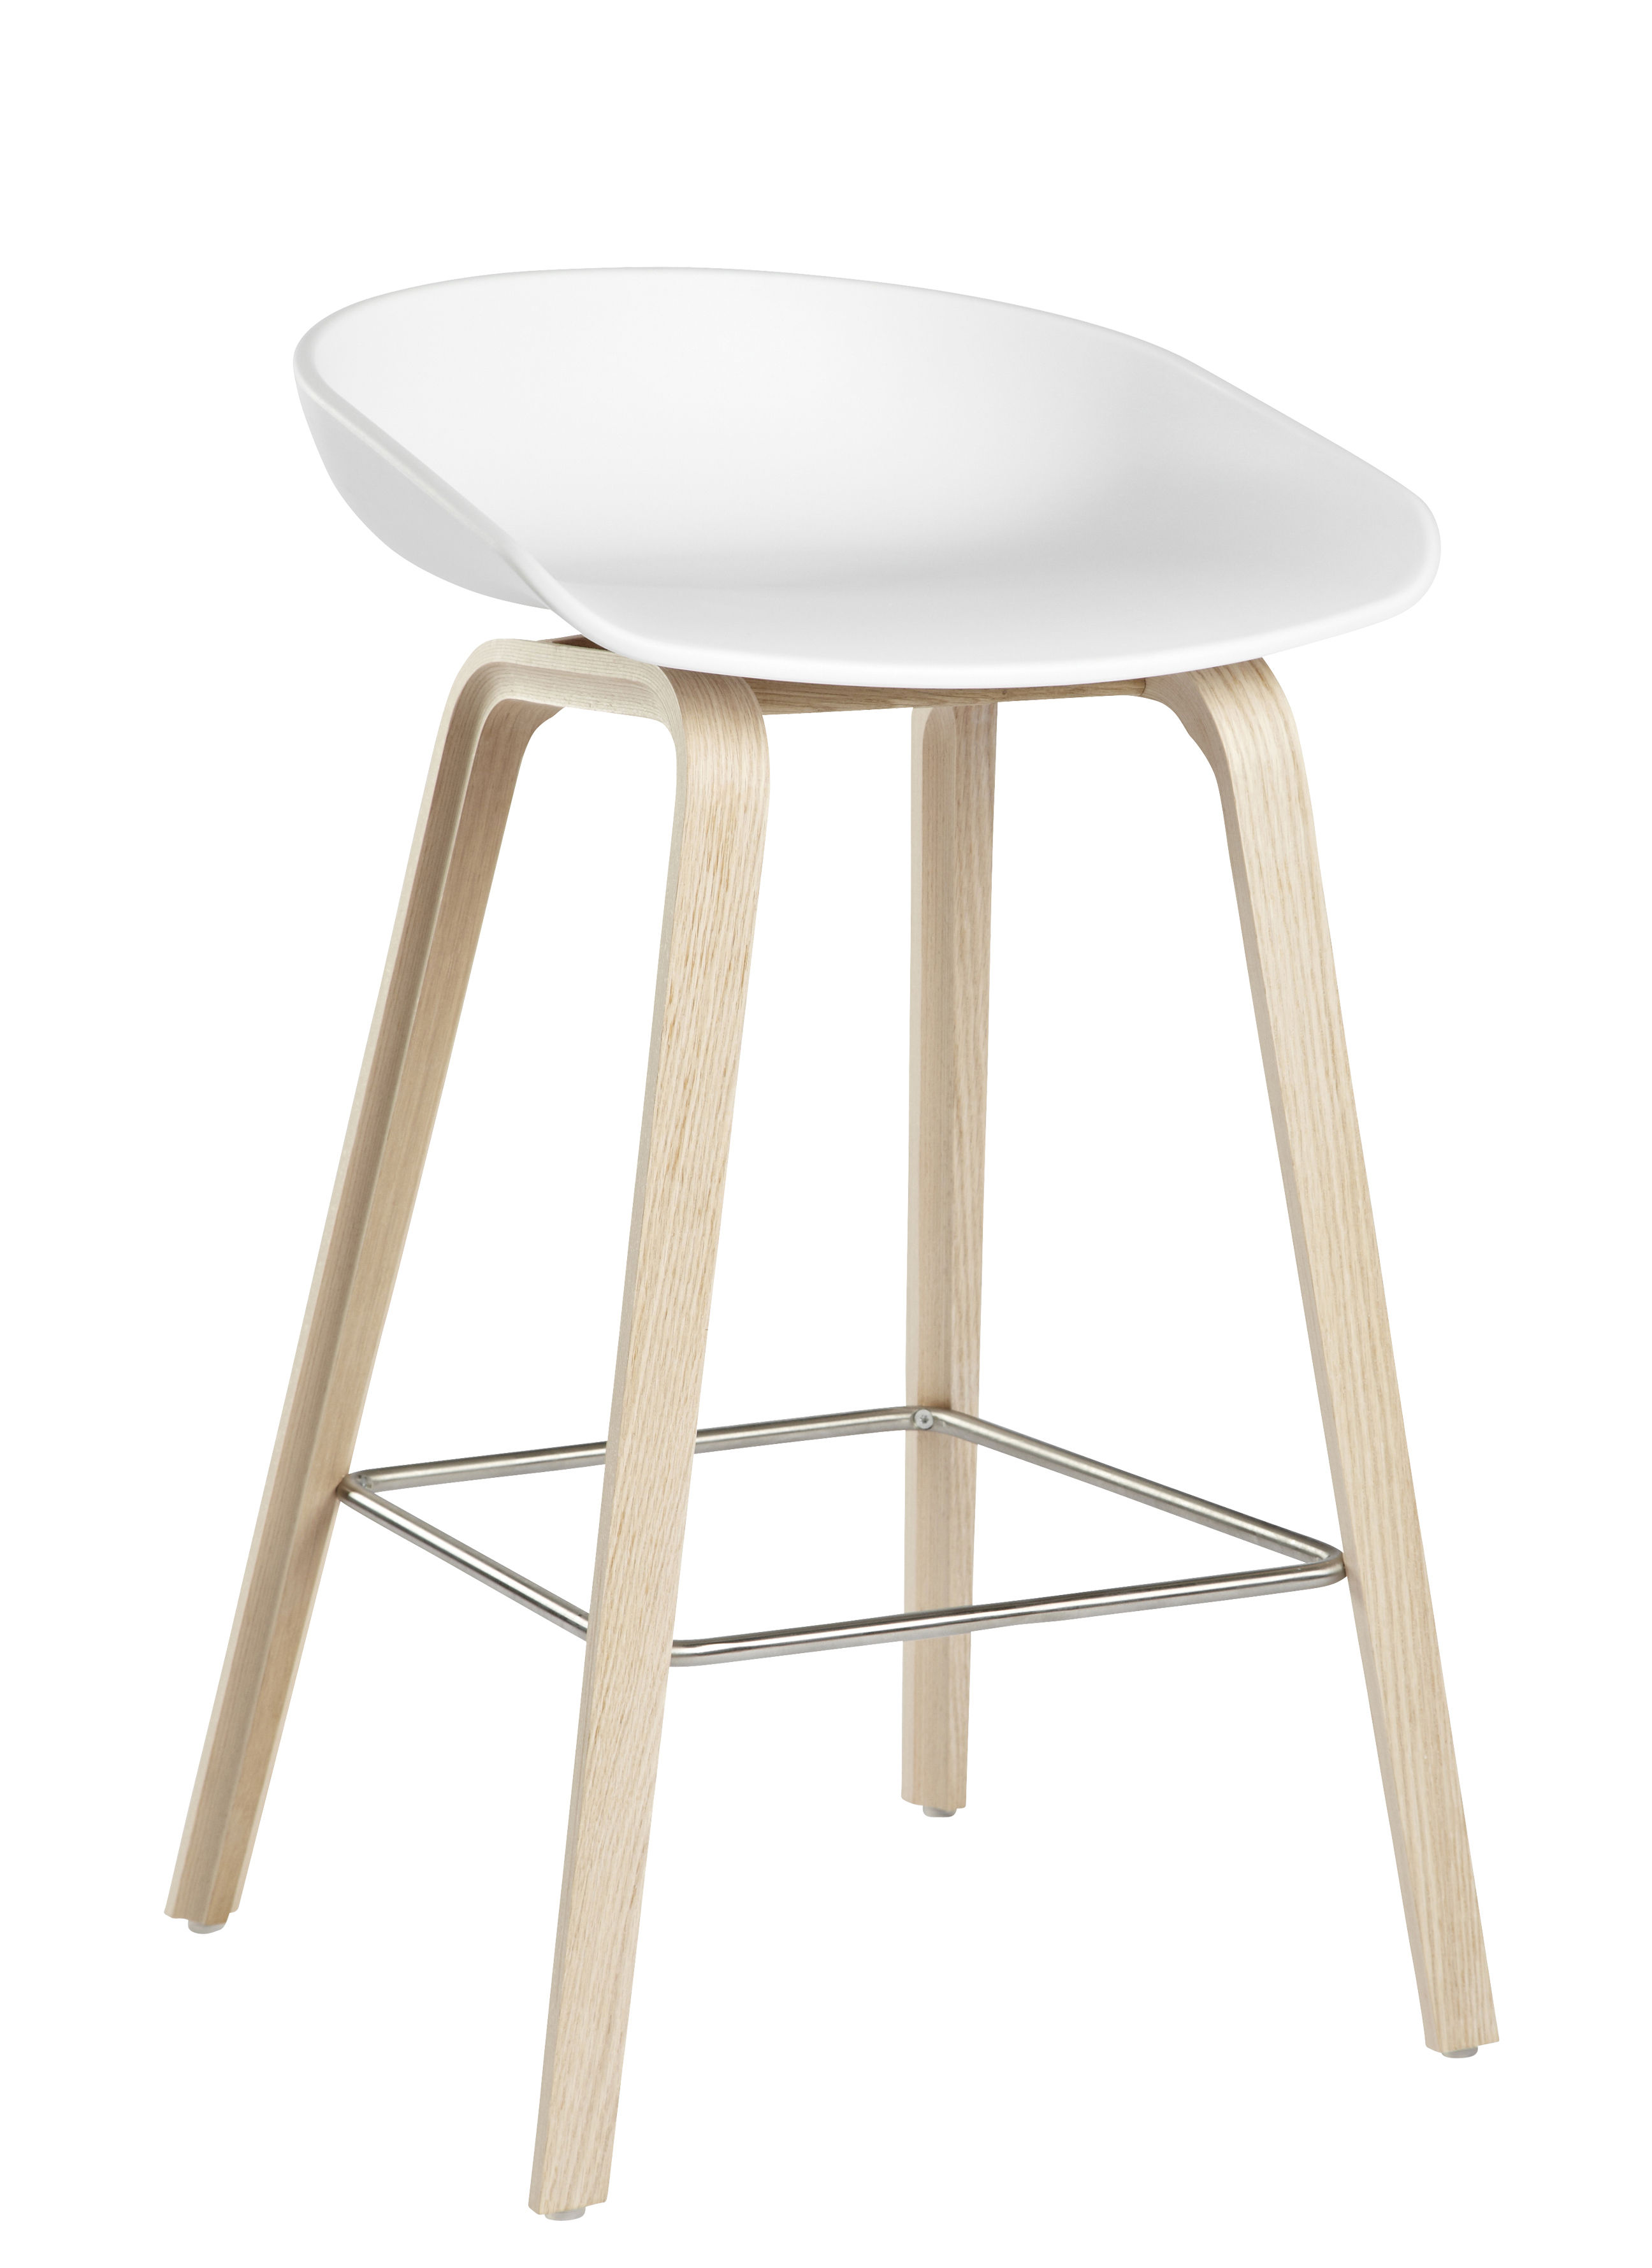 tabouret de bar about a stool aas 32 h 65 cm plastique. Black Bedroom Furniture Sets. Home Design Ideas